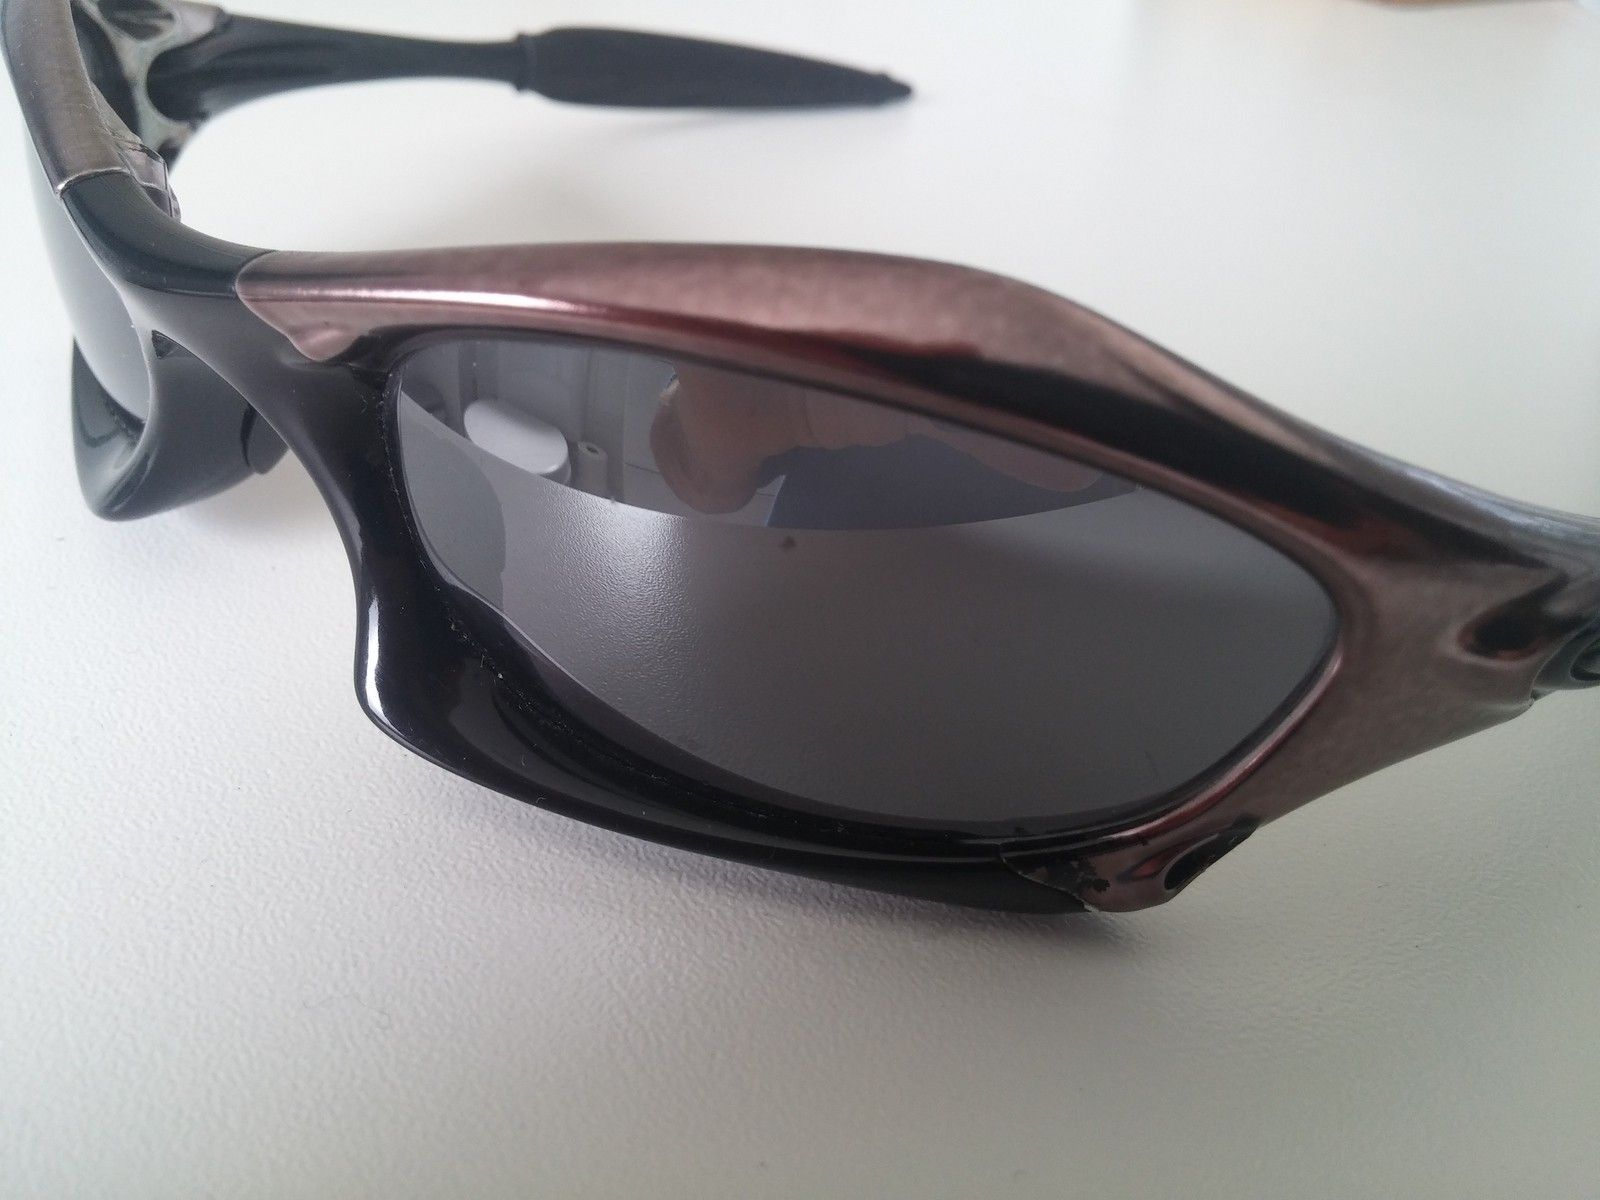 Help with old pair please! - uploadfromtaptalk1436703975469.jpg